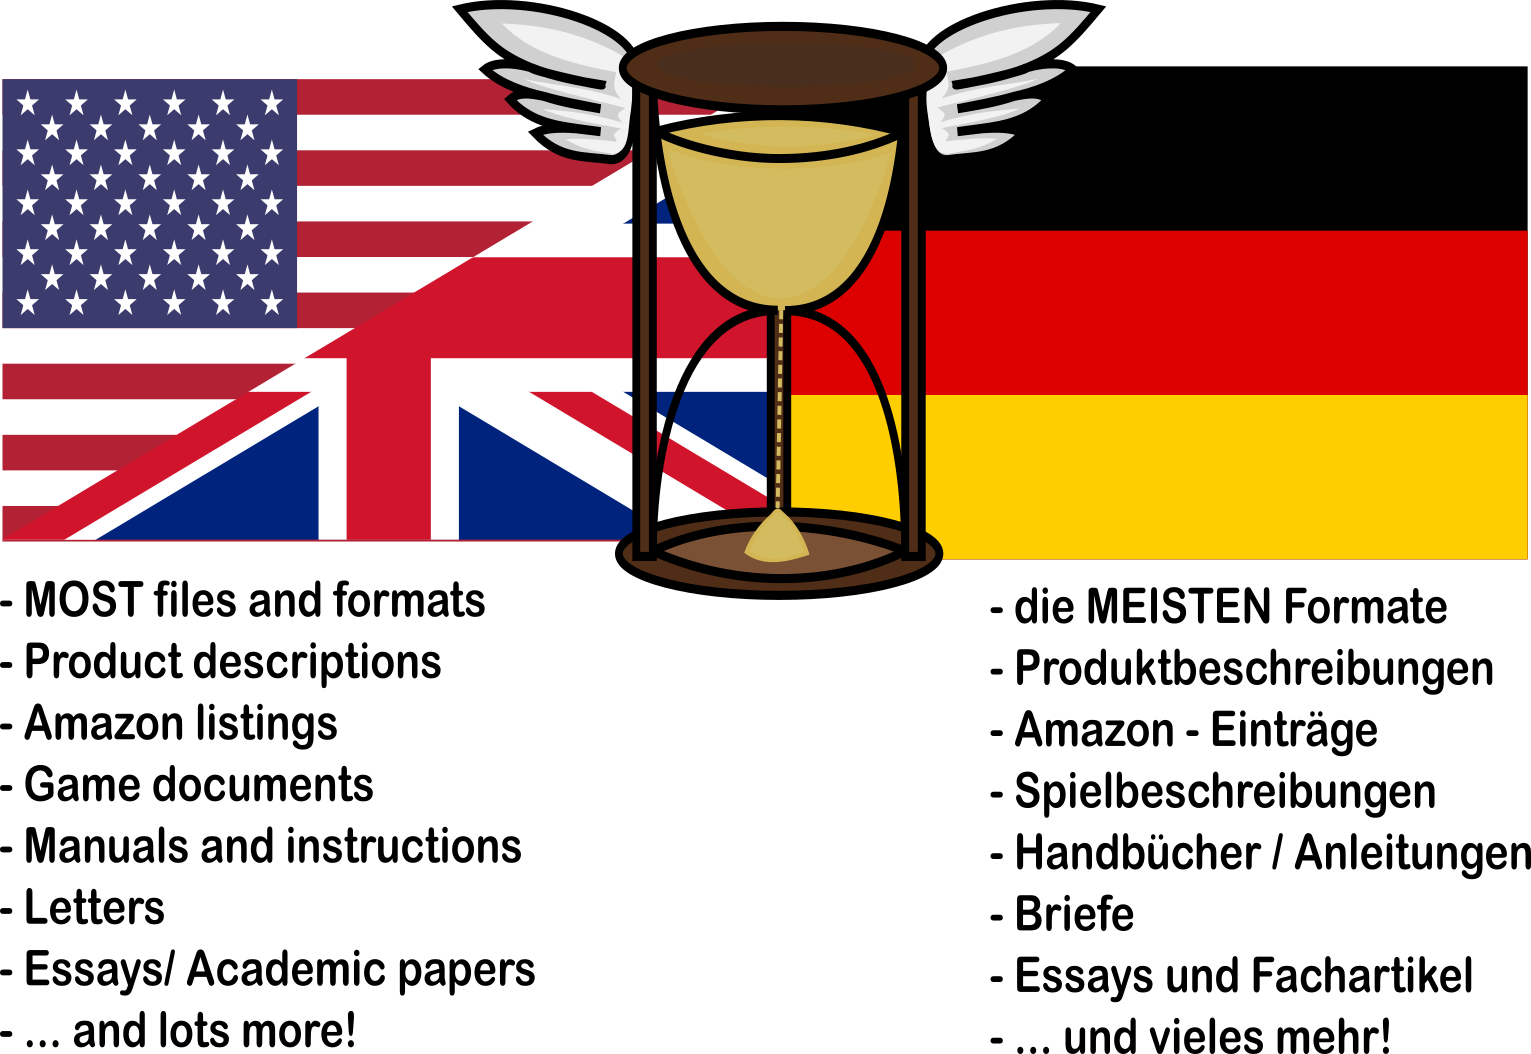 professionally translate 500 words from English to German and vice versa